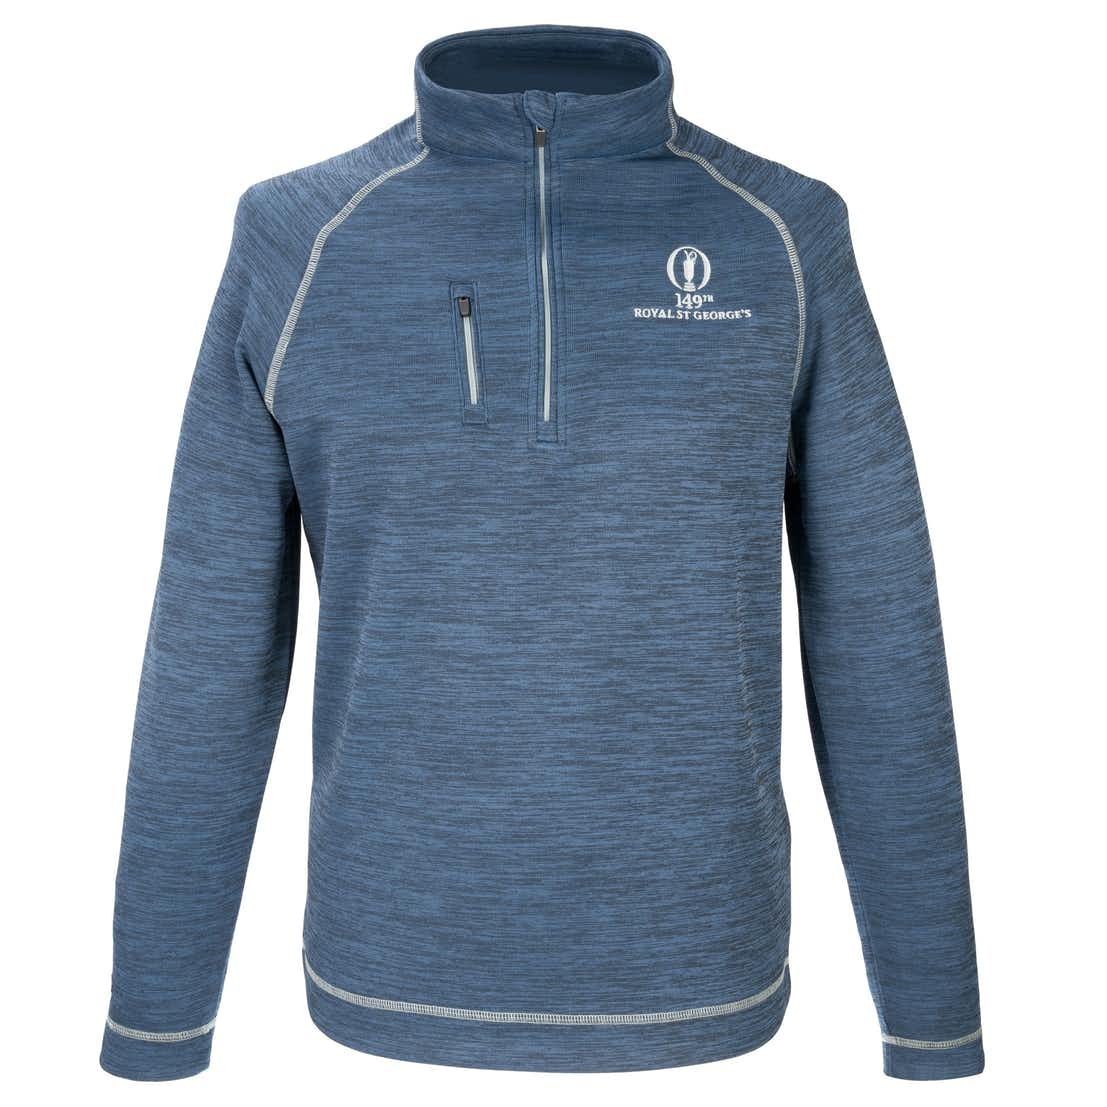 149th Royal St George's 1/4-Zip Layer Sweater - Blue